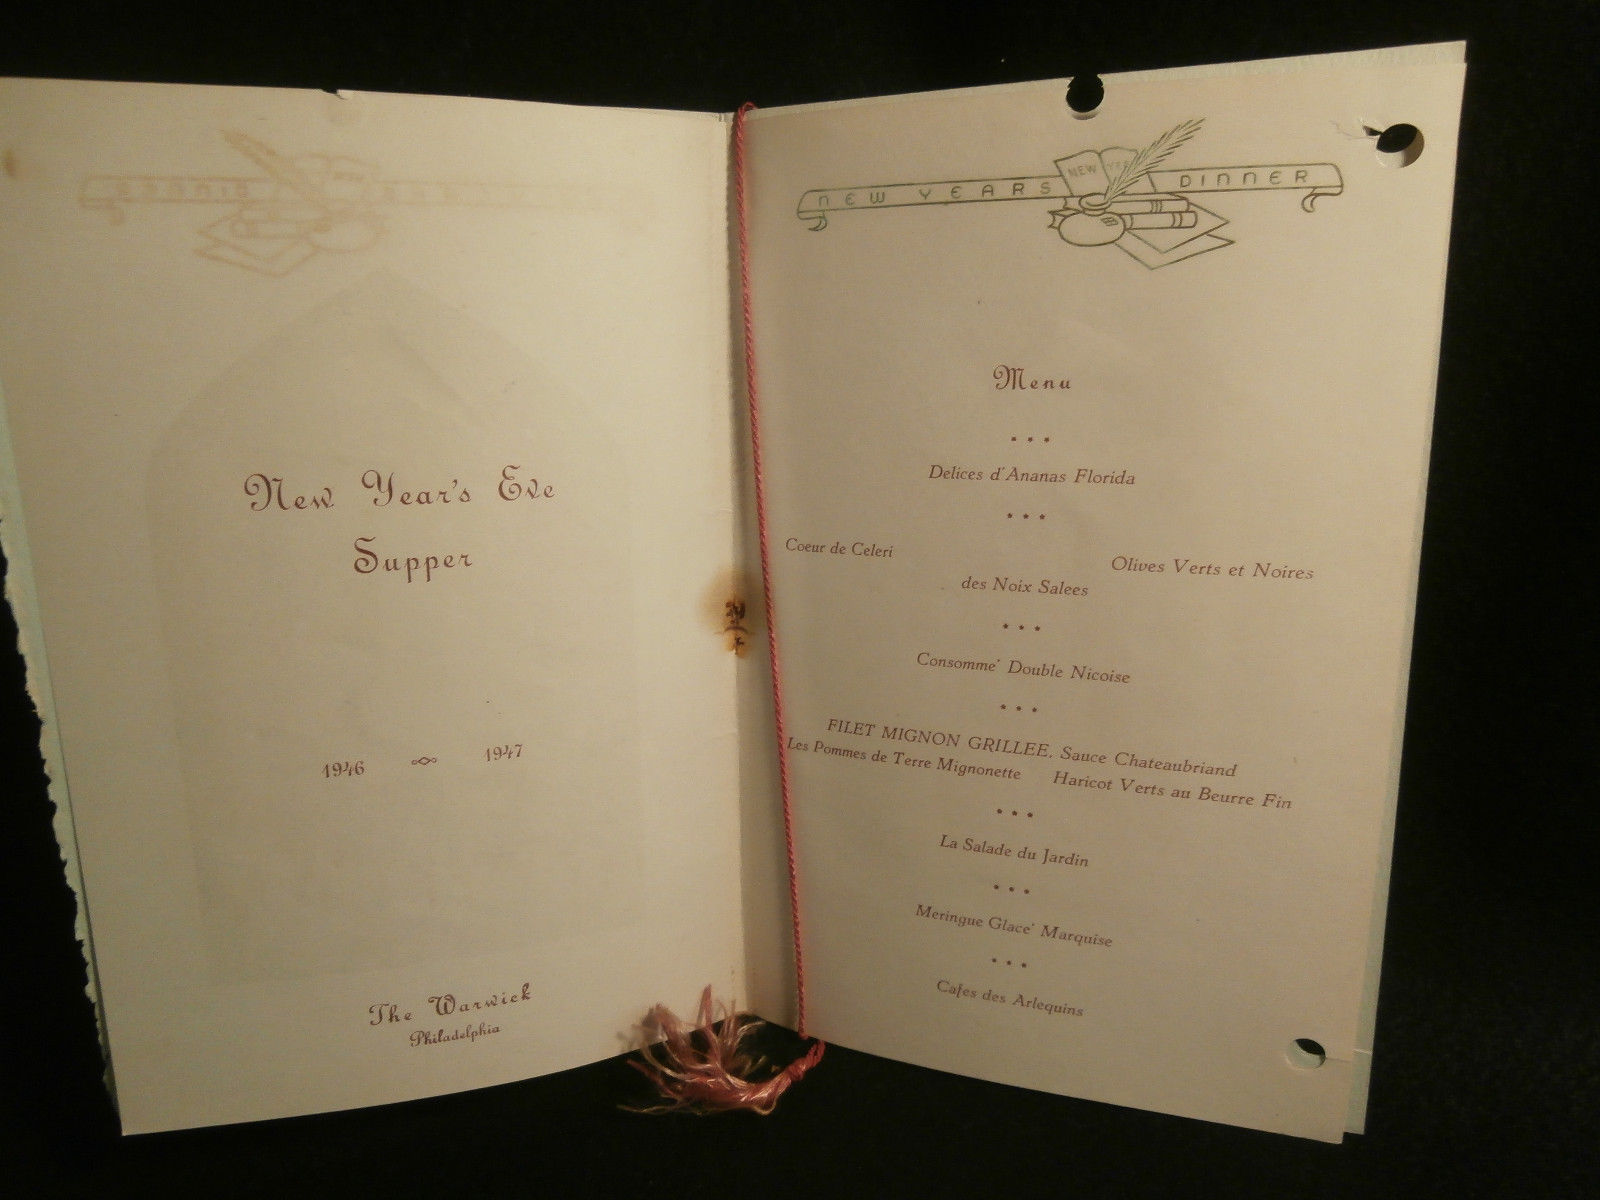 The Warwick Hotel Philadelphia PA Happy New Year Menu 1947